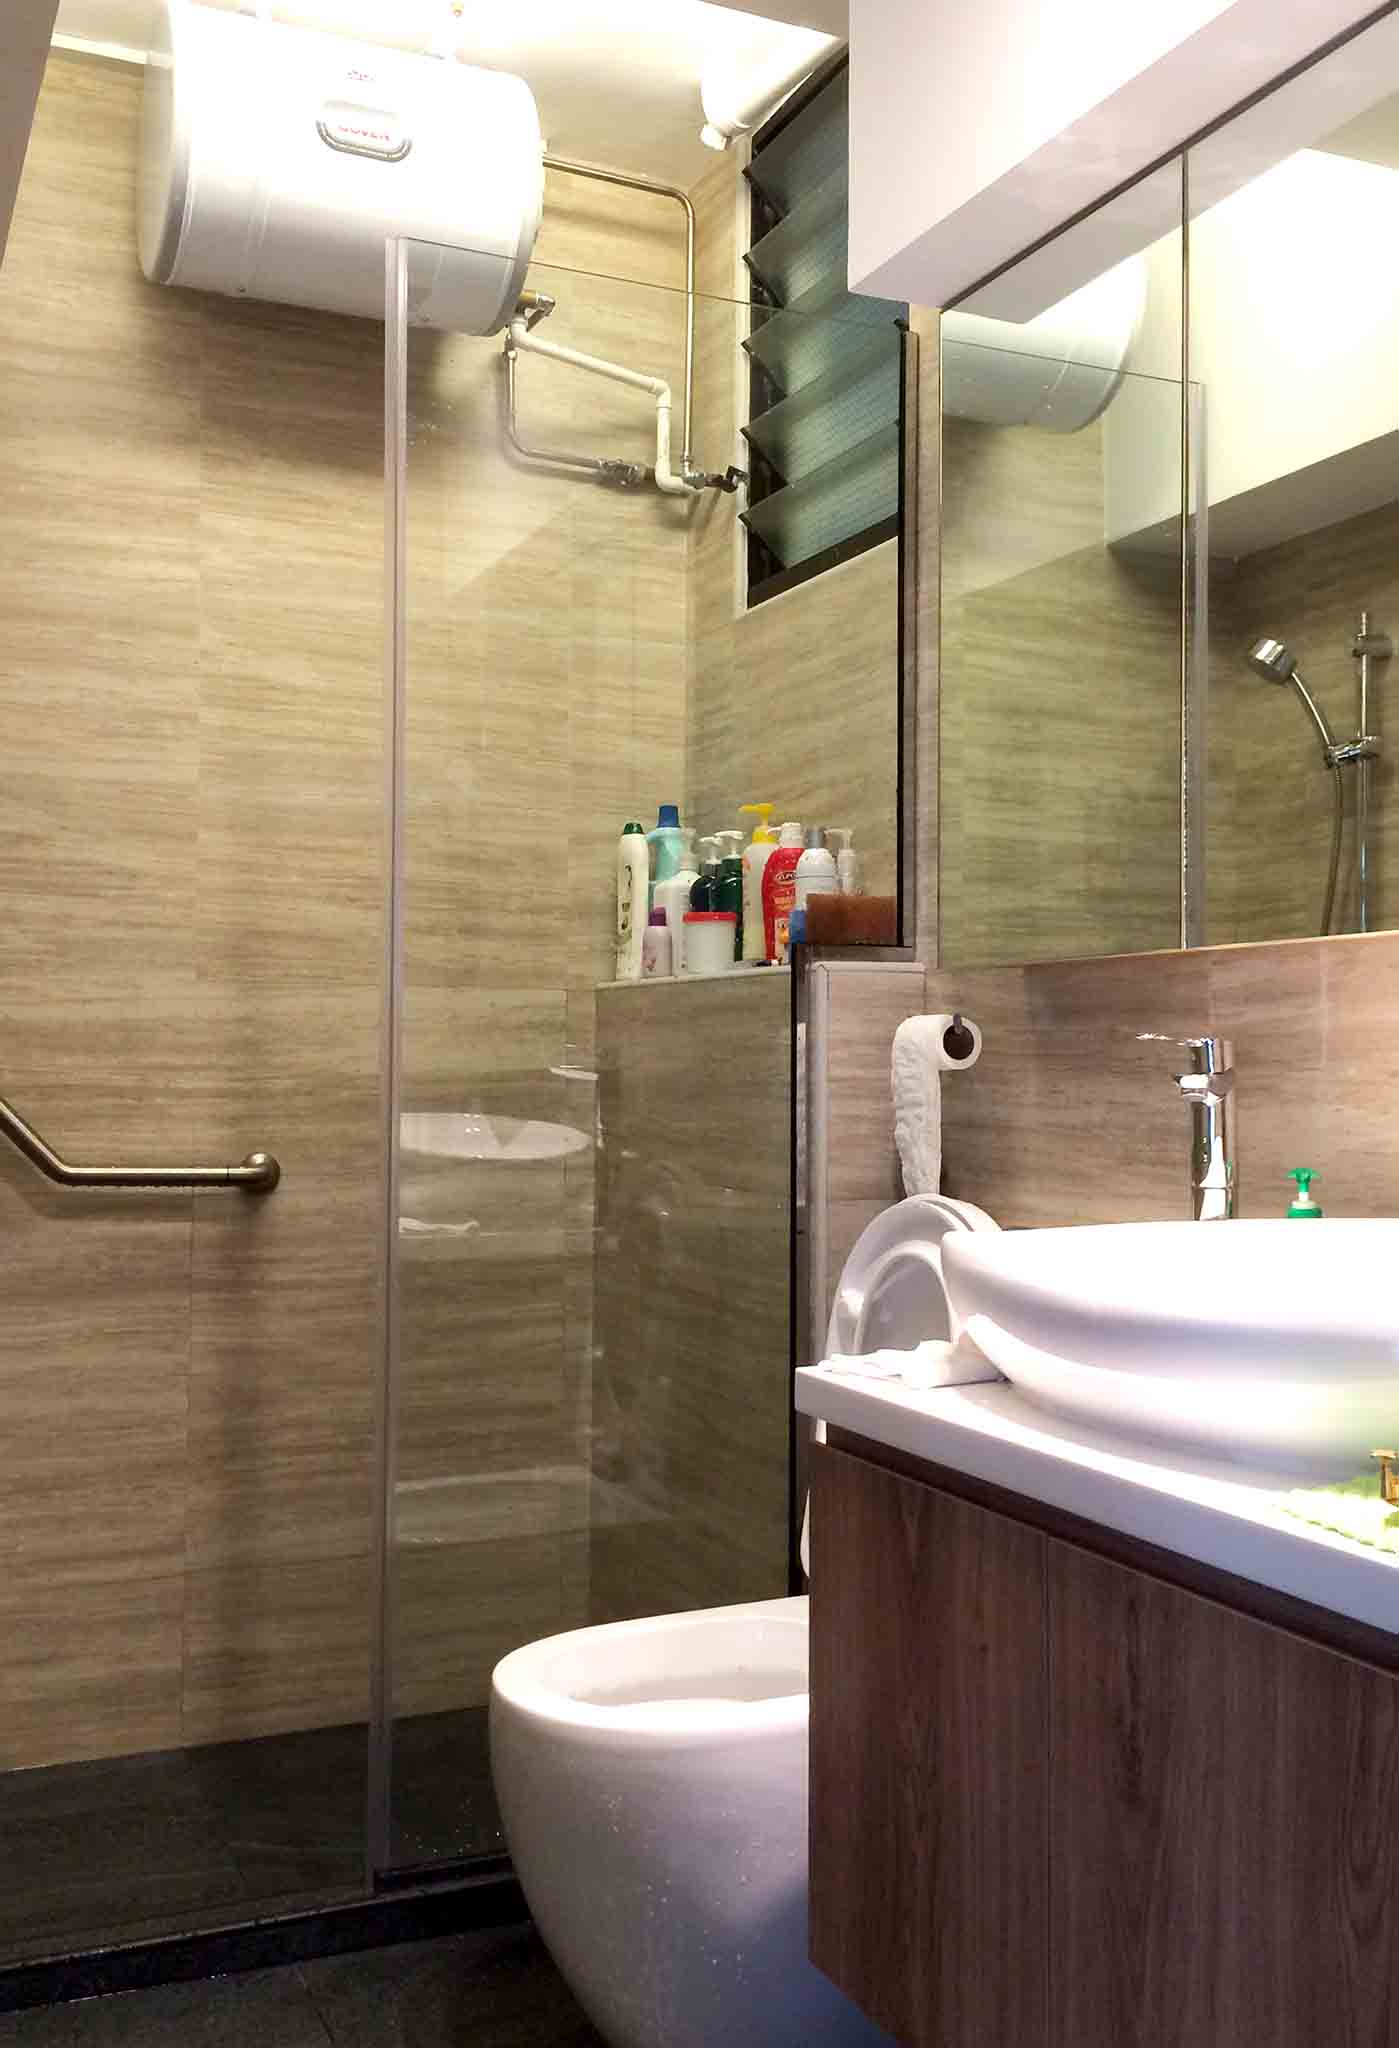 Hdb basic package renovation contractor singapore for Bathroom renovation package